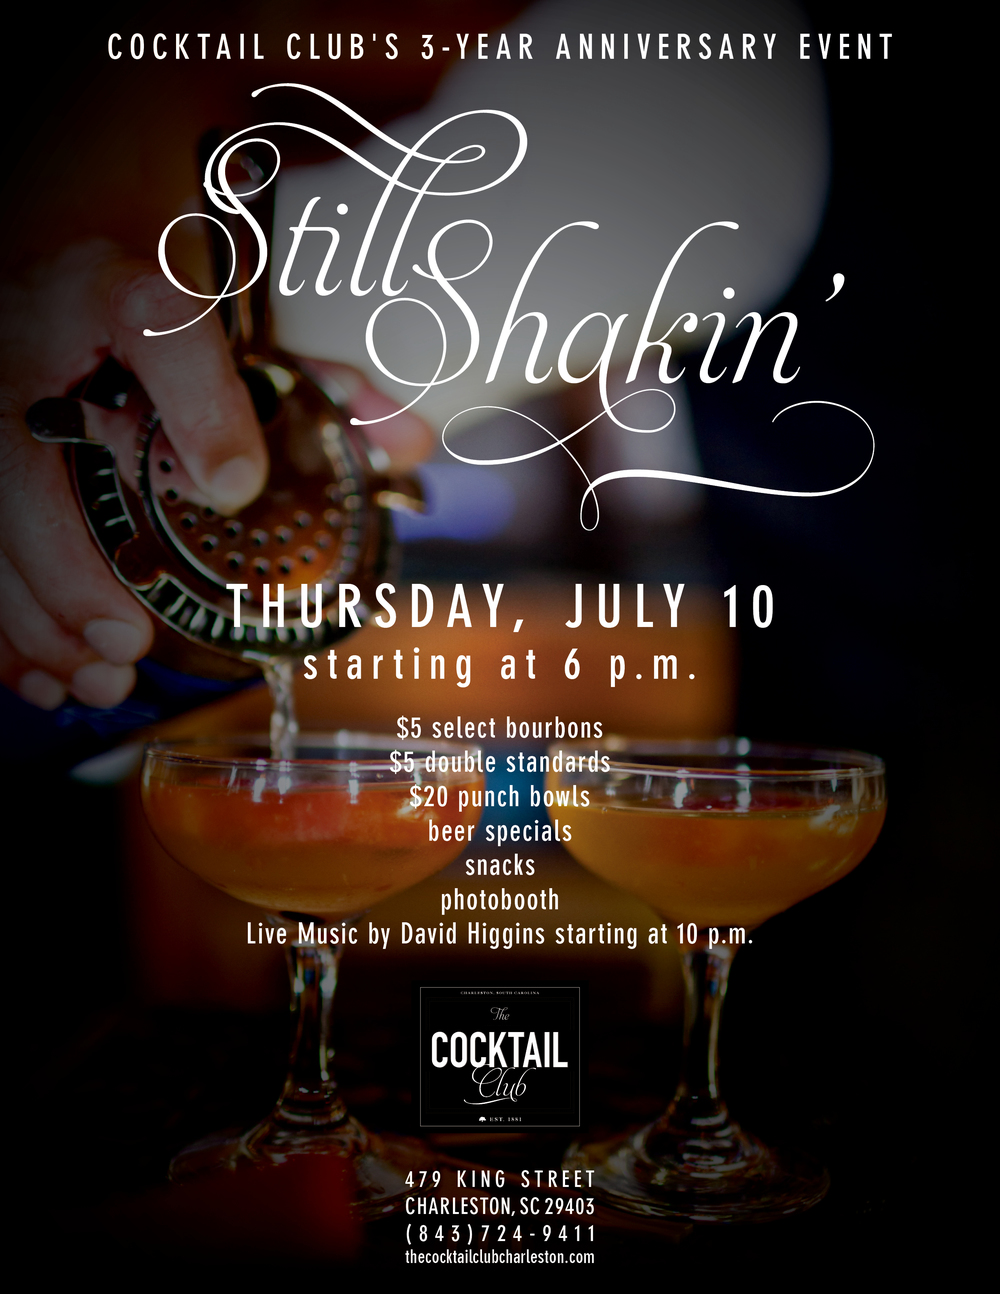 Event: The Cocktail Club, Charleston, SC